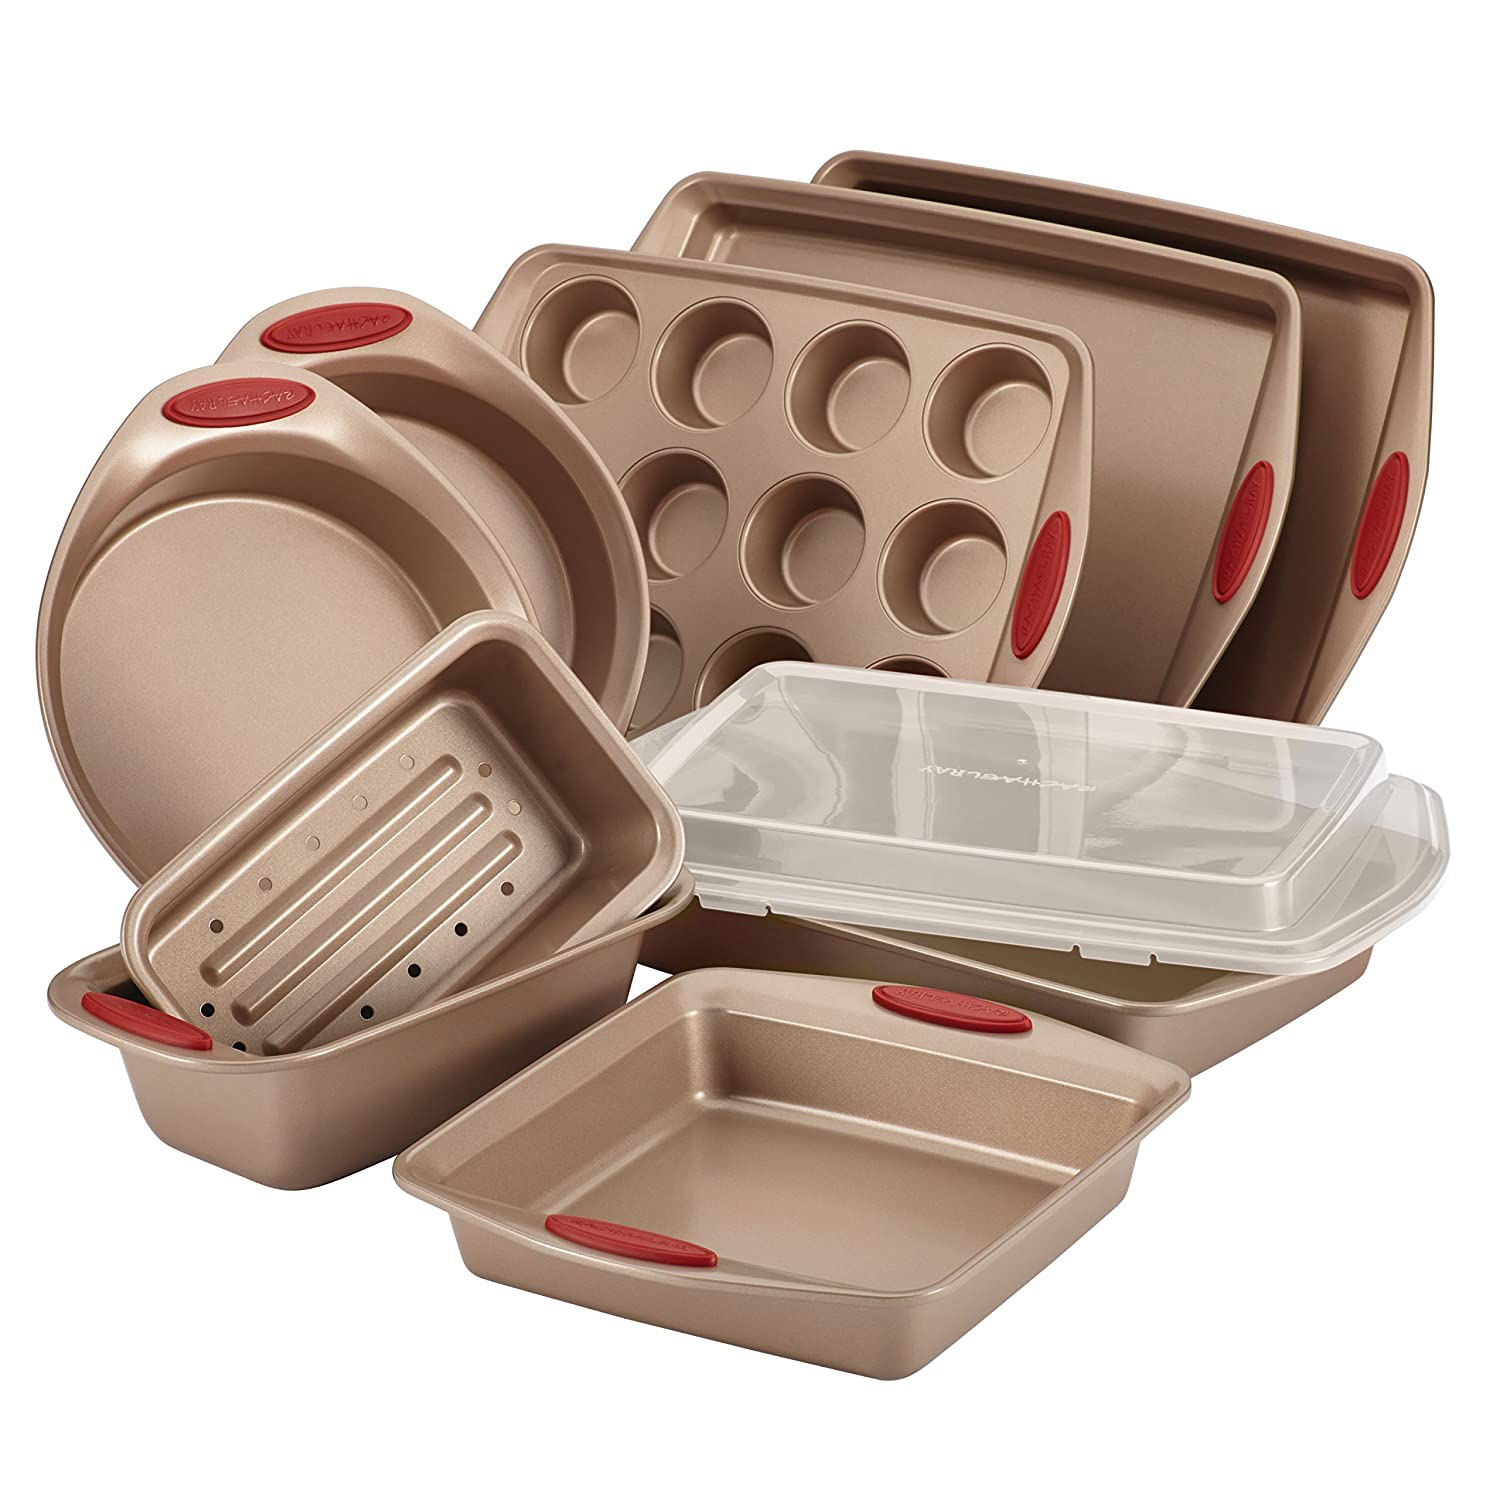 Rachael Ray Cucina Nonstick Bakeware 10-Piece Set, Latte Brown with Cranberry Red Handle Grips 52410